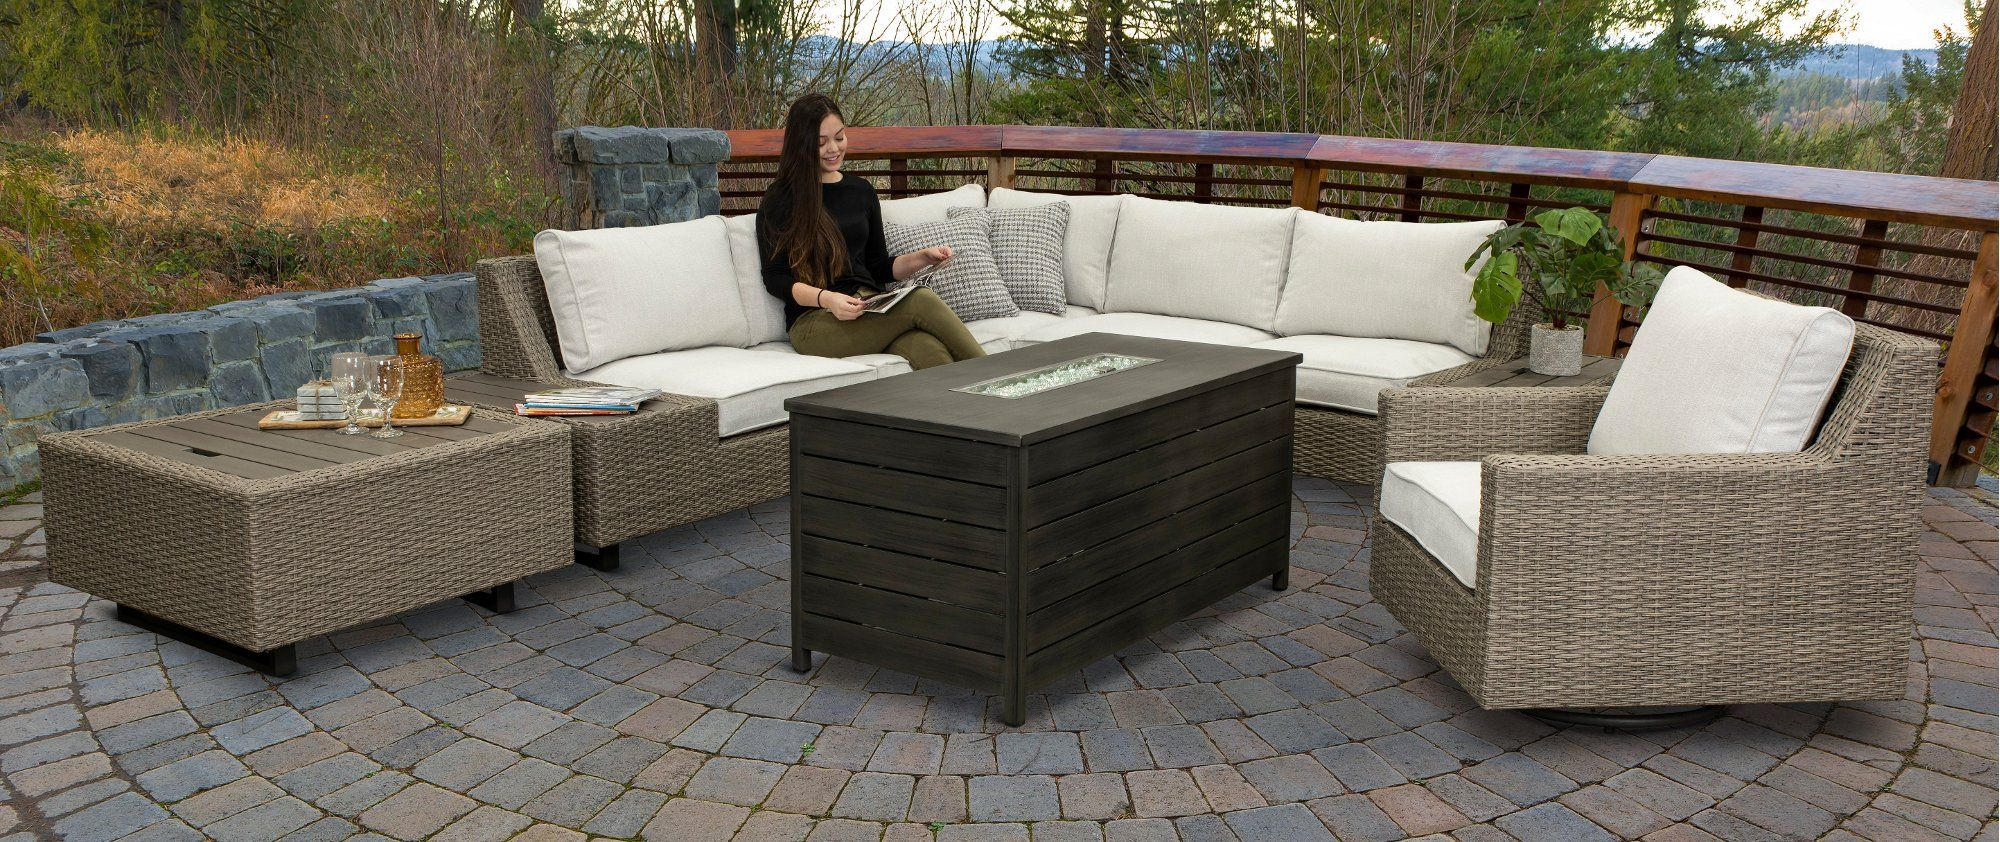 Outdoor Table With Ice Cooler Box Diy Outdoor Table Diy Outdoor Furniture Outdoor Coffee Tables